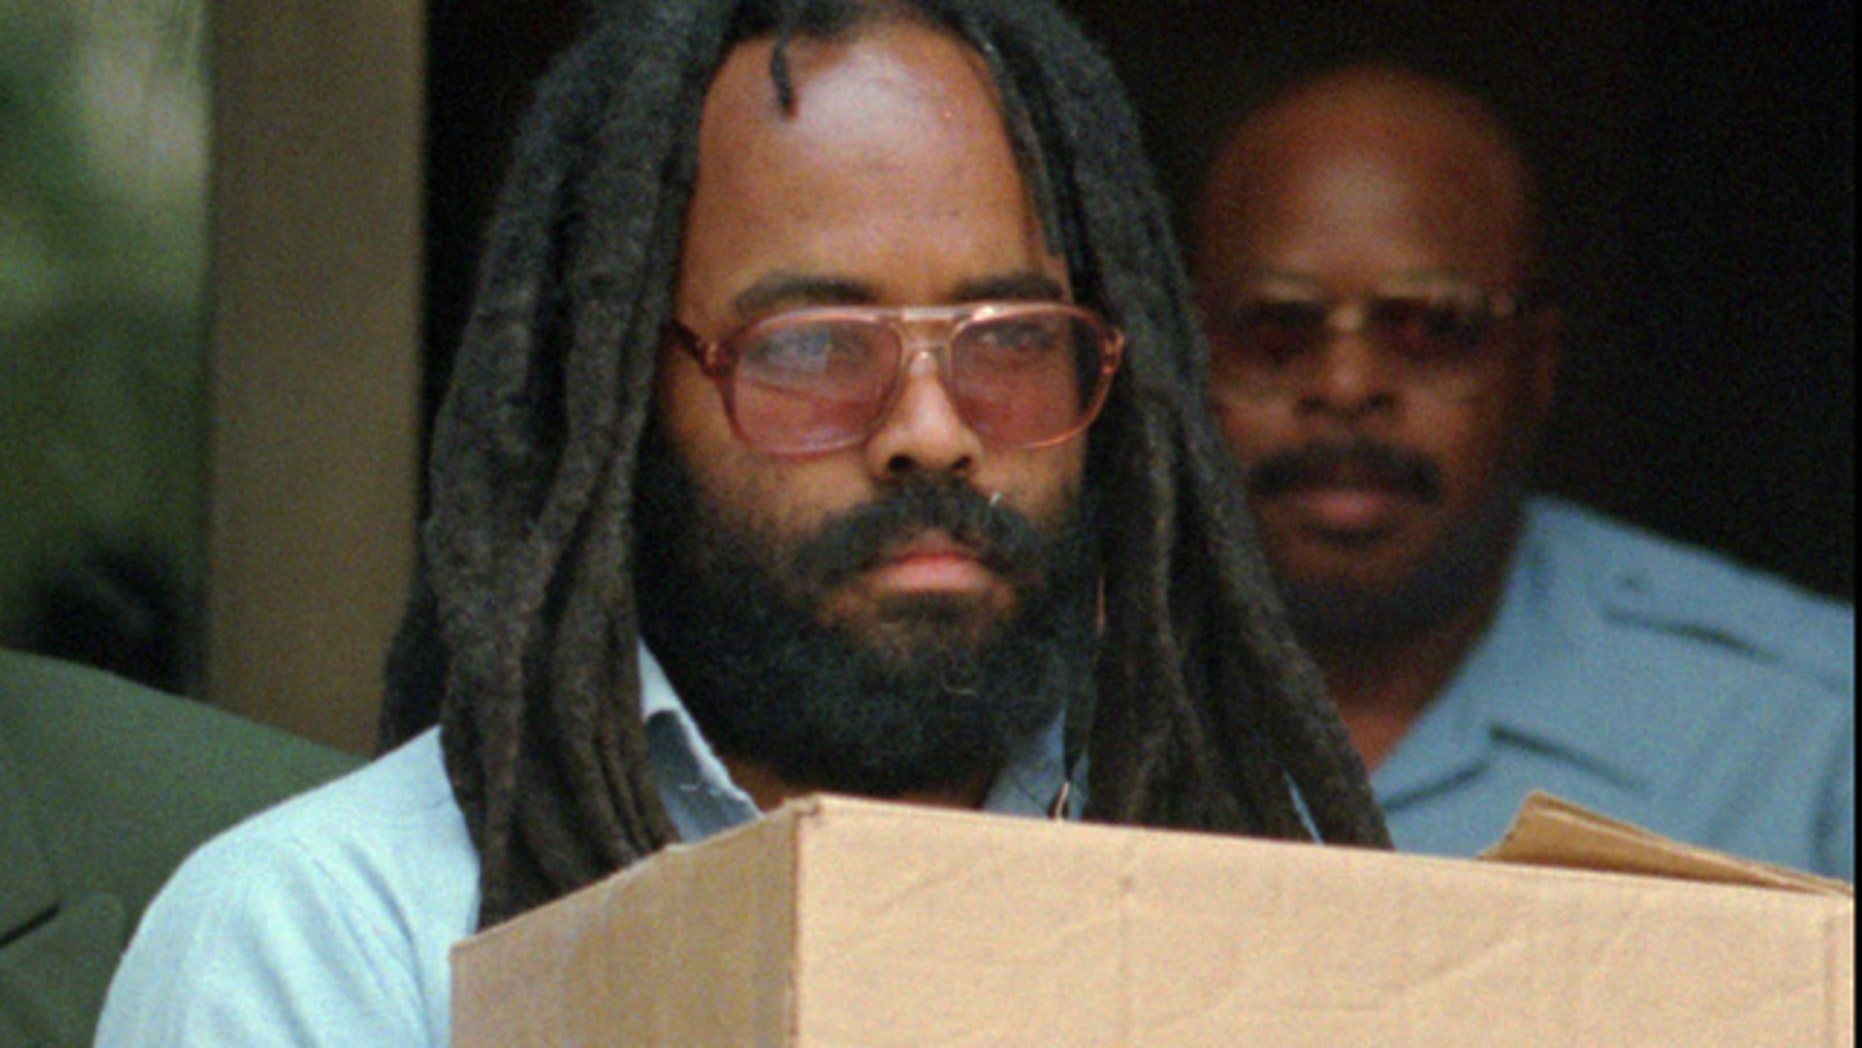 Mumia Abu-Jamal leaves Philadelphia's City Hall after a hearing in 1995. (AP)